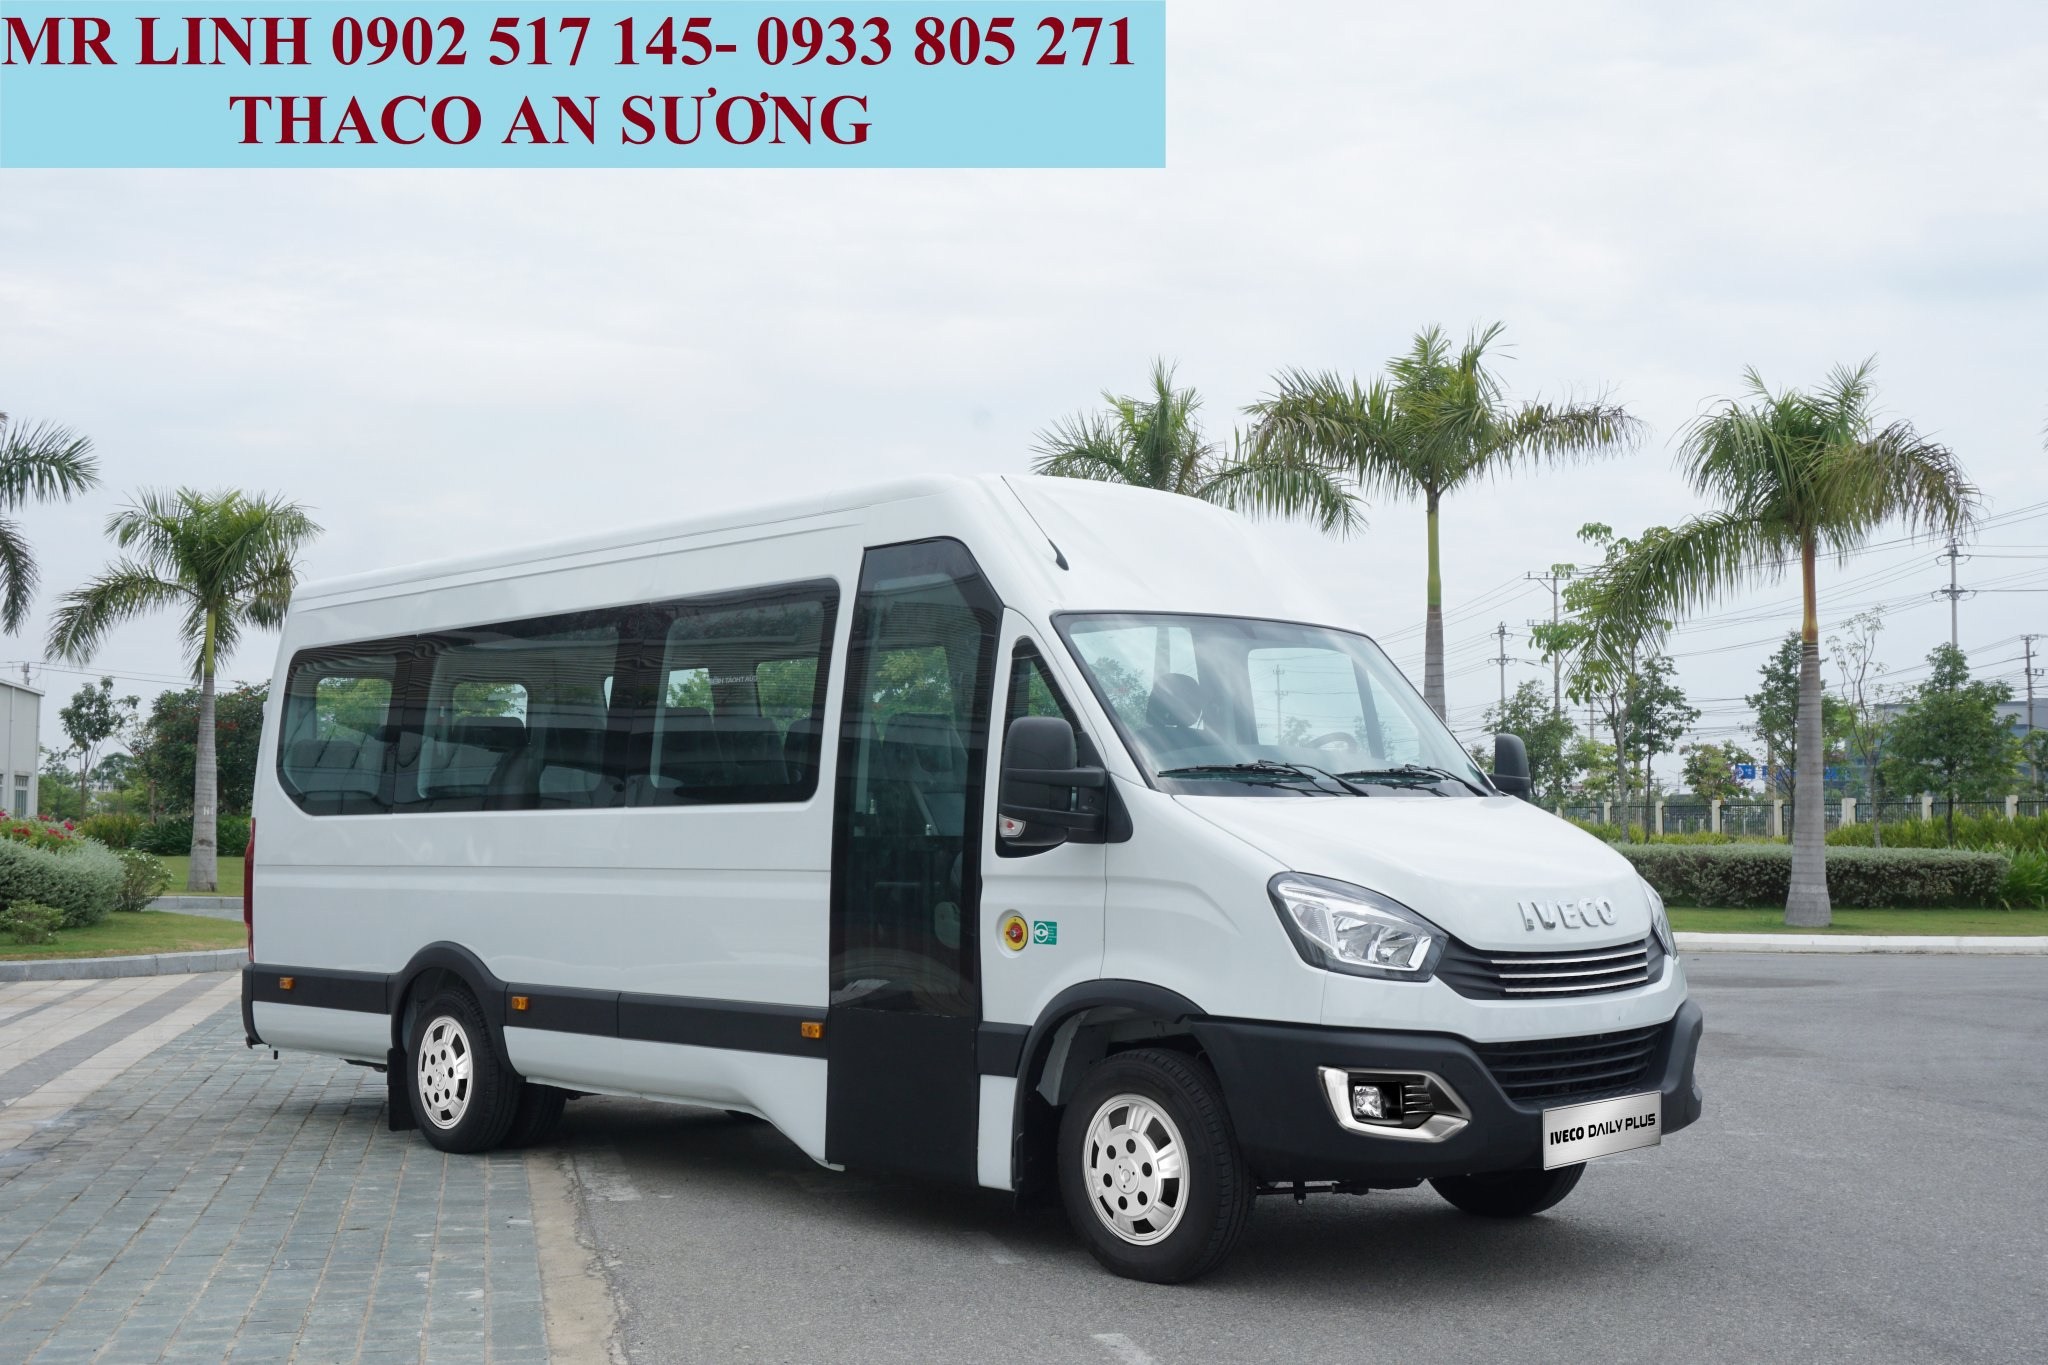 Iveco Daily Plus (4).JPG